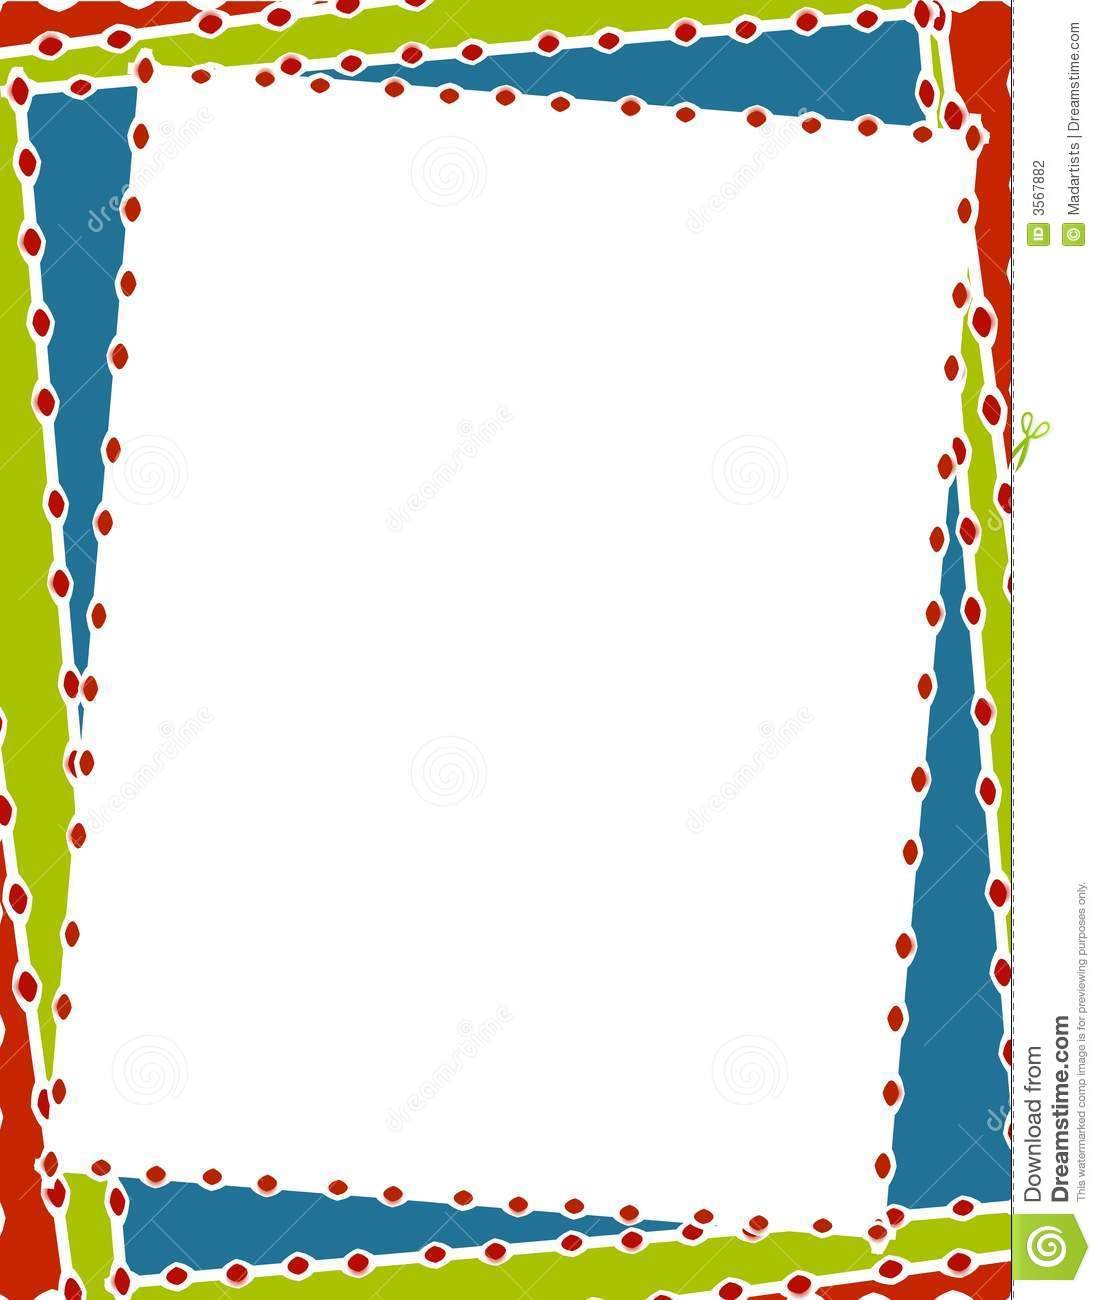 Retro Christmas Border Frame Stock Illustration.